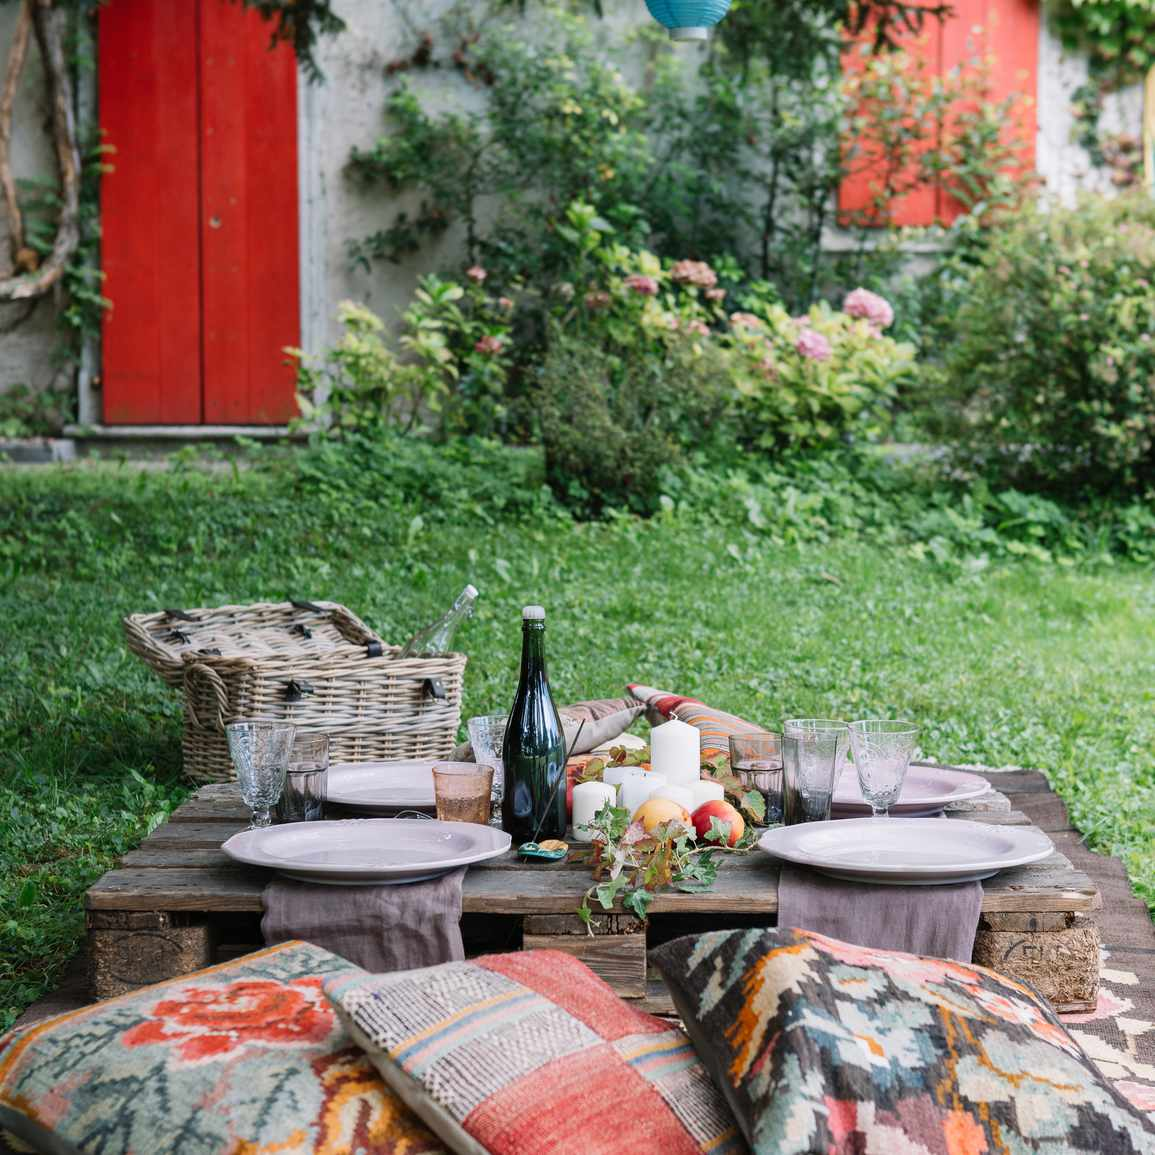 Outdoor pillows around table setting